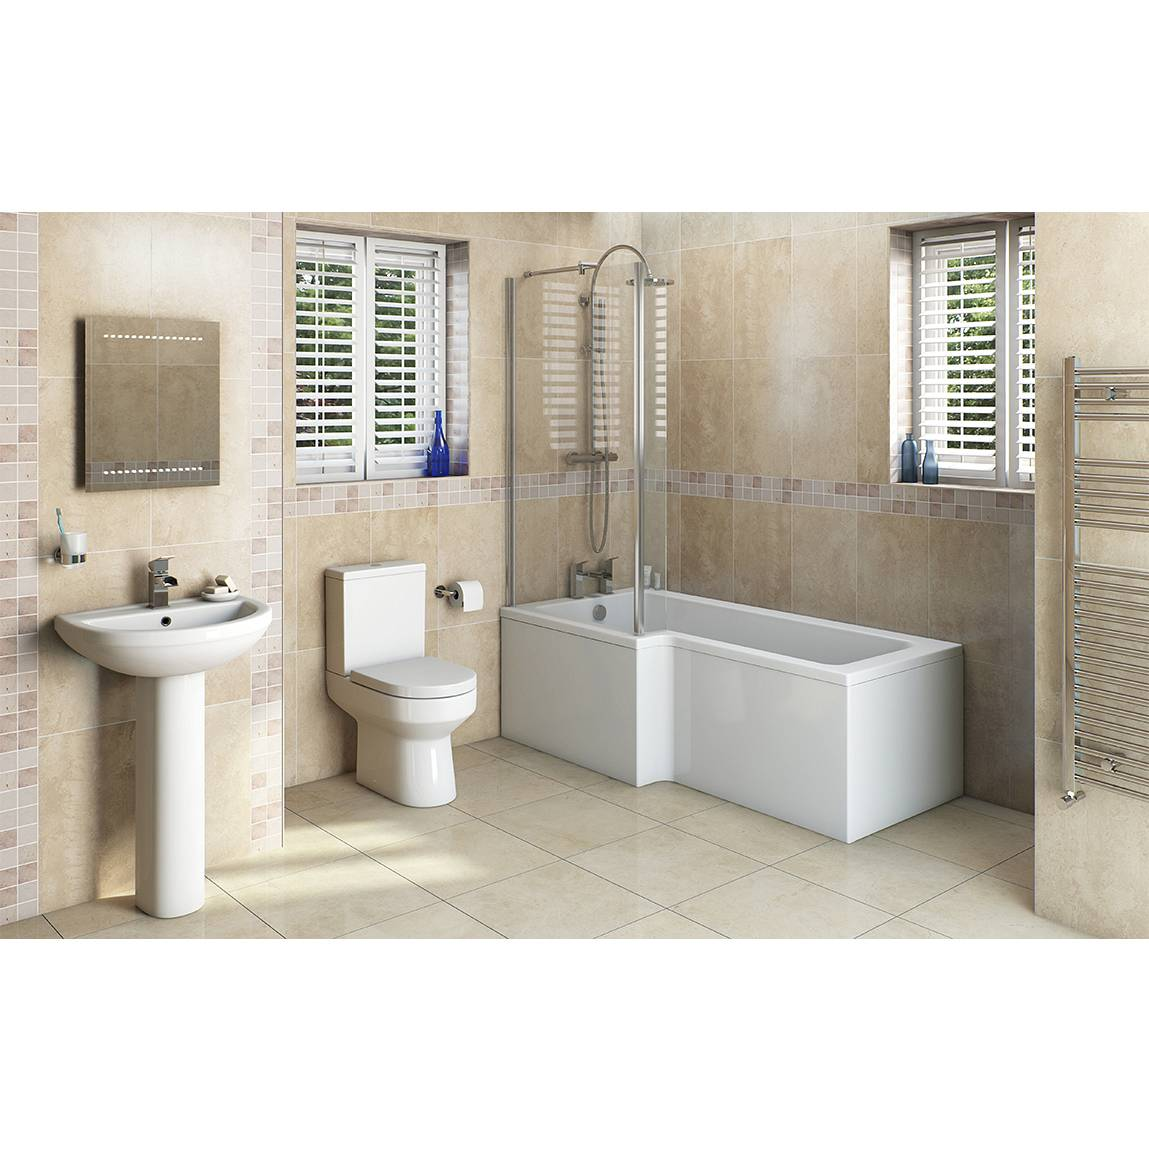 Image of Oakley Bathroom Suite with Boston 1700 x 850 Shower Bath LH & Free Tap